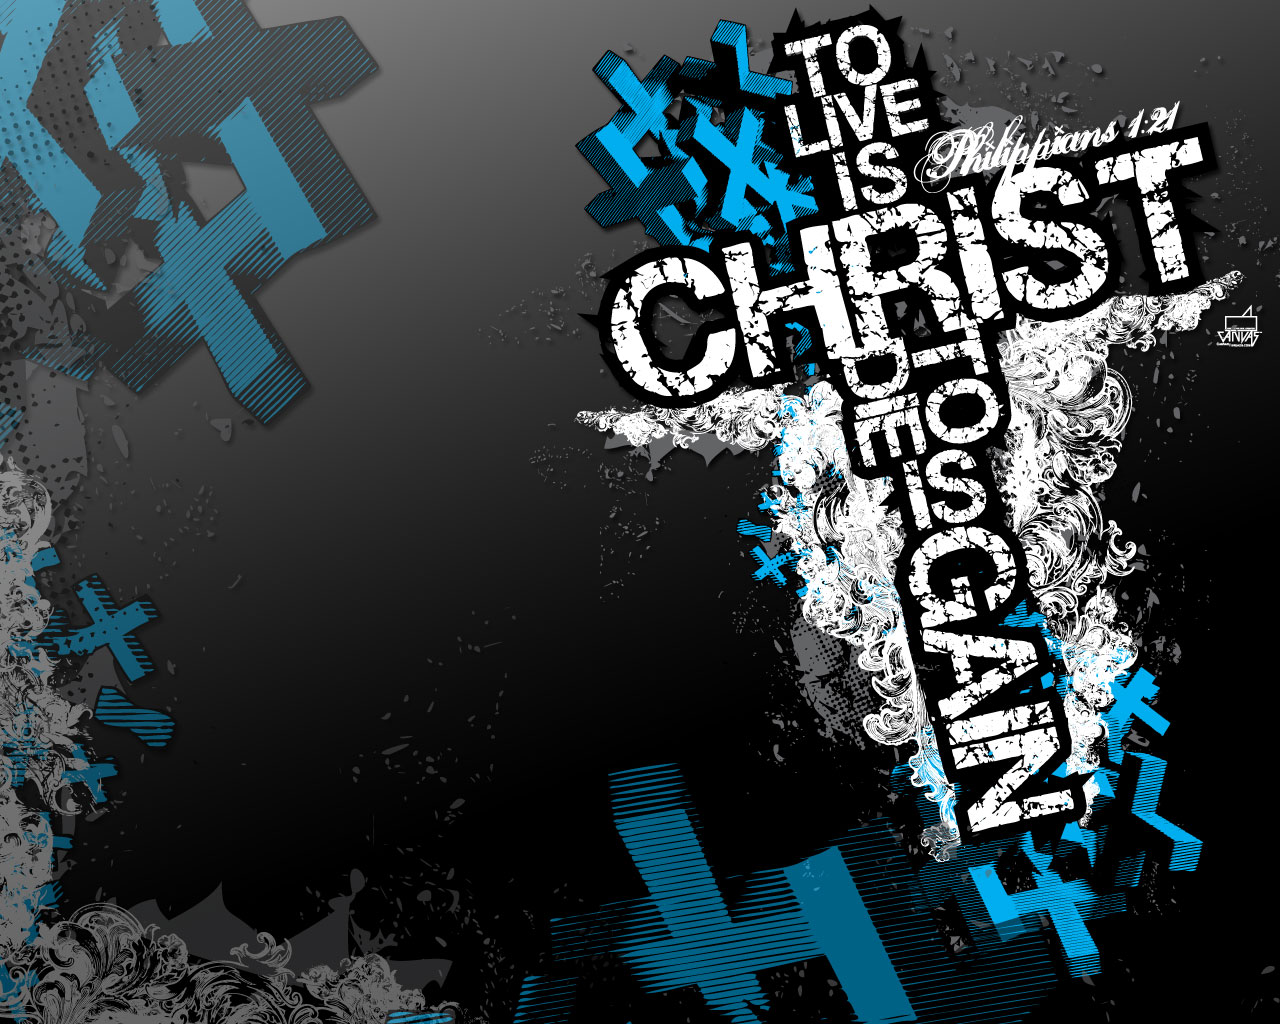 Christian Wallpaper Backgrounds In Hd 1280x1024